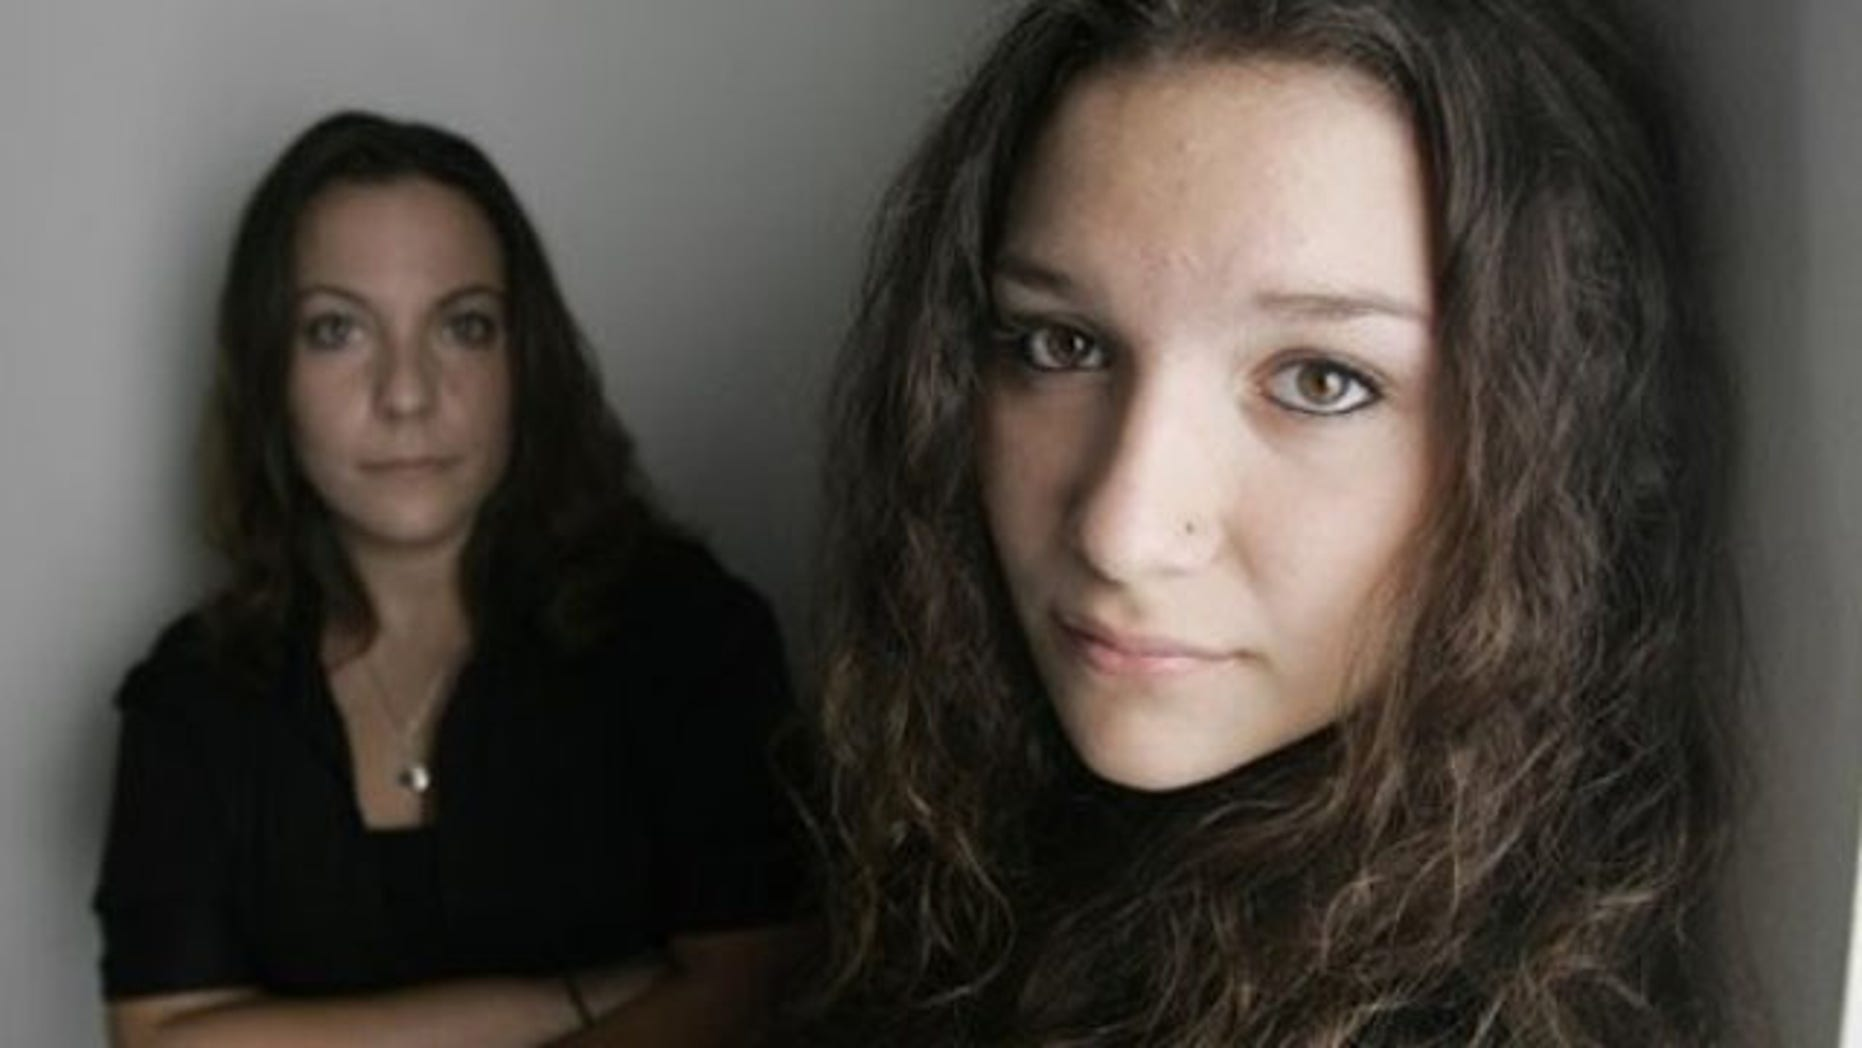 Sept. 15, 2010: Nikki Iacono, left, and her daughter Ariana Iacono, 14, in Clayton, N.C.